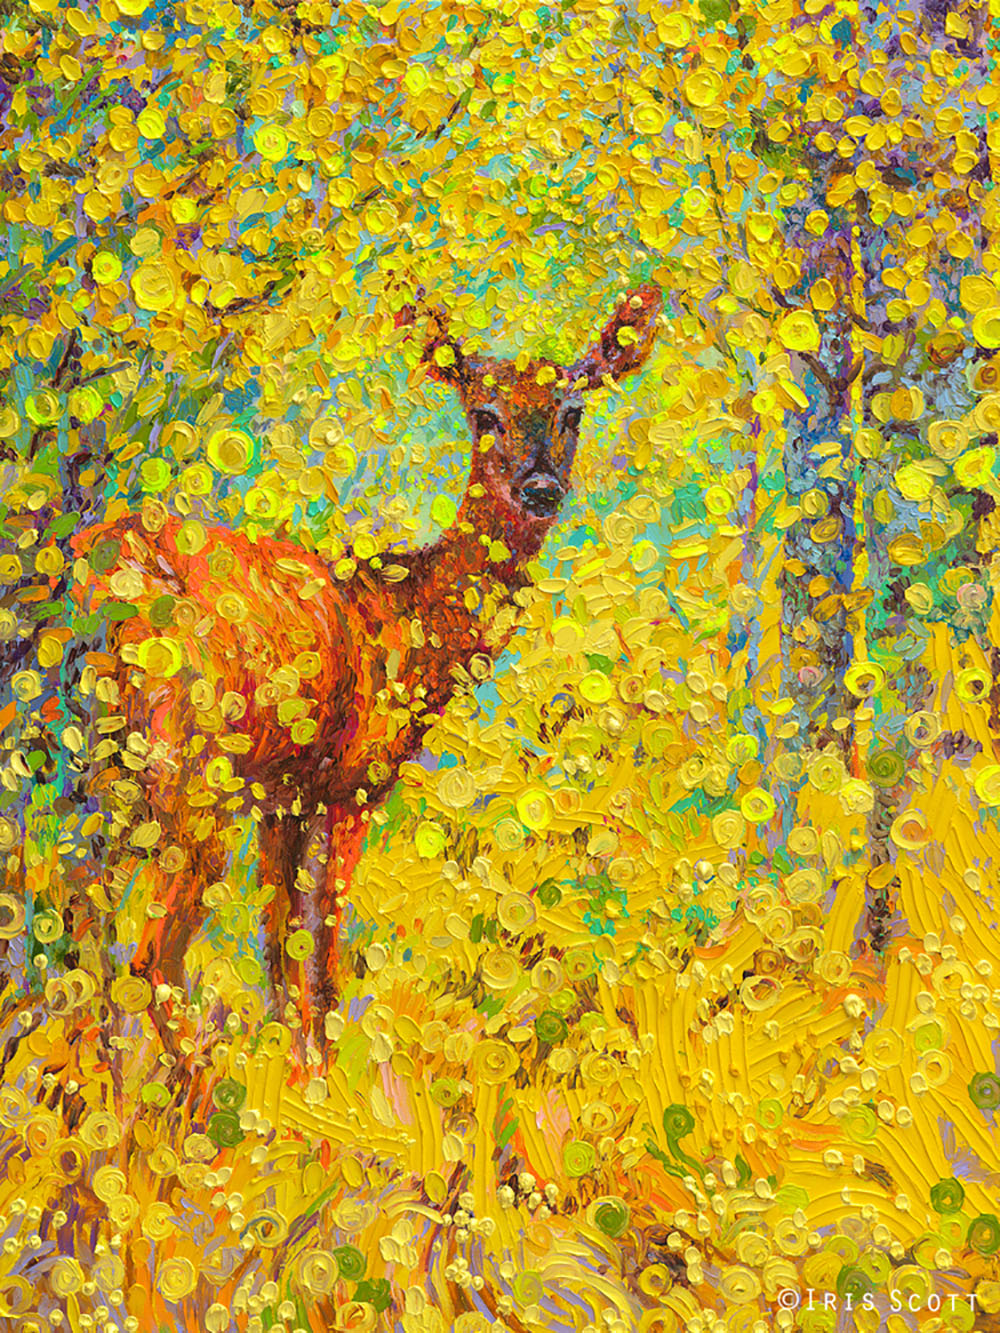 Oil Finger Paintings by Iris Scott 5